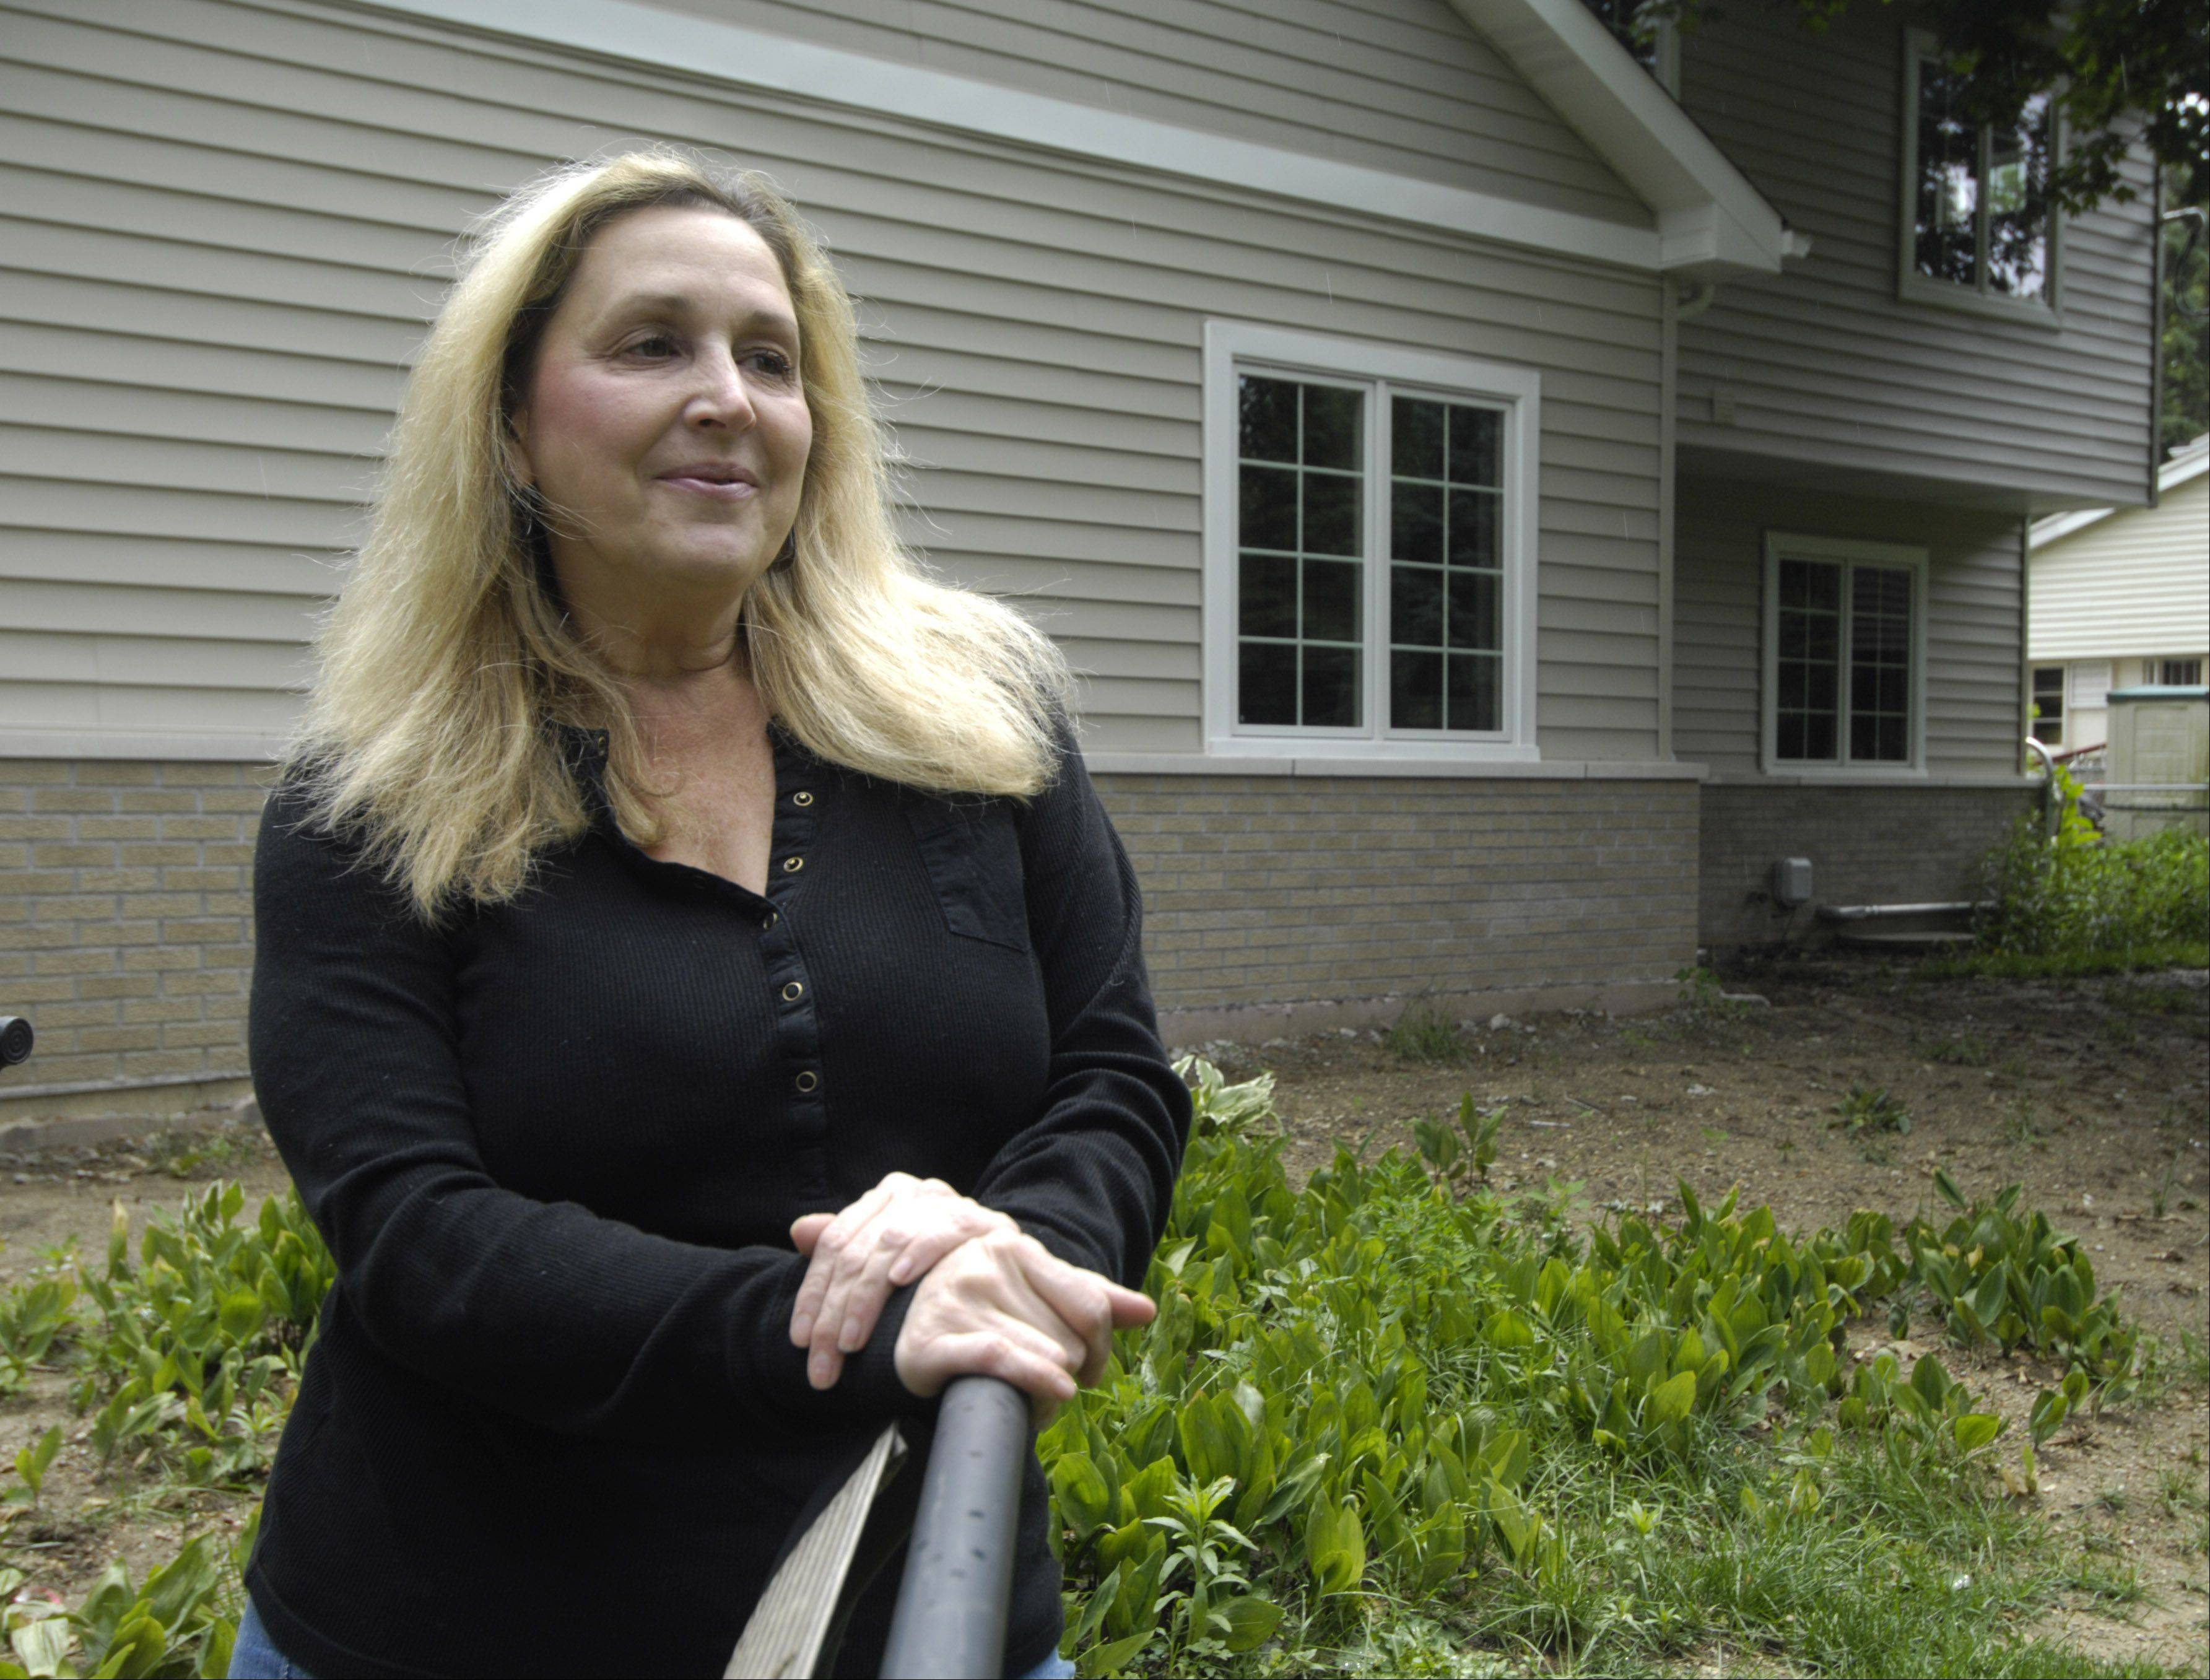 Sharon Zeeck and her family have won a makeover for the backyard of their Prospect Heights home.